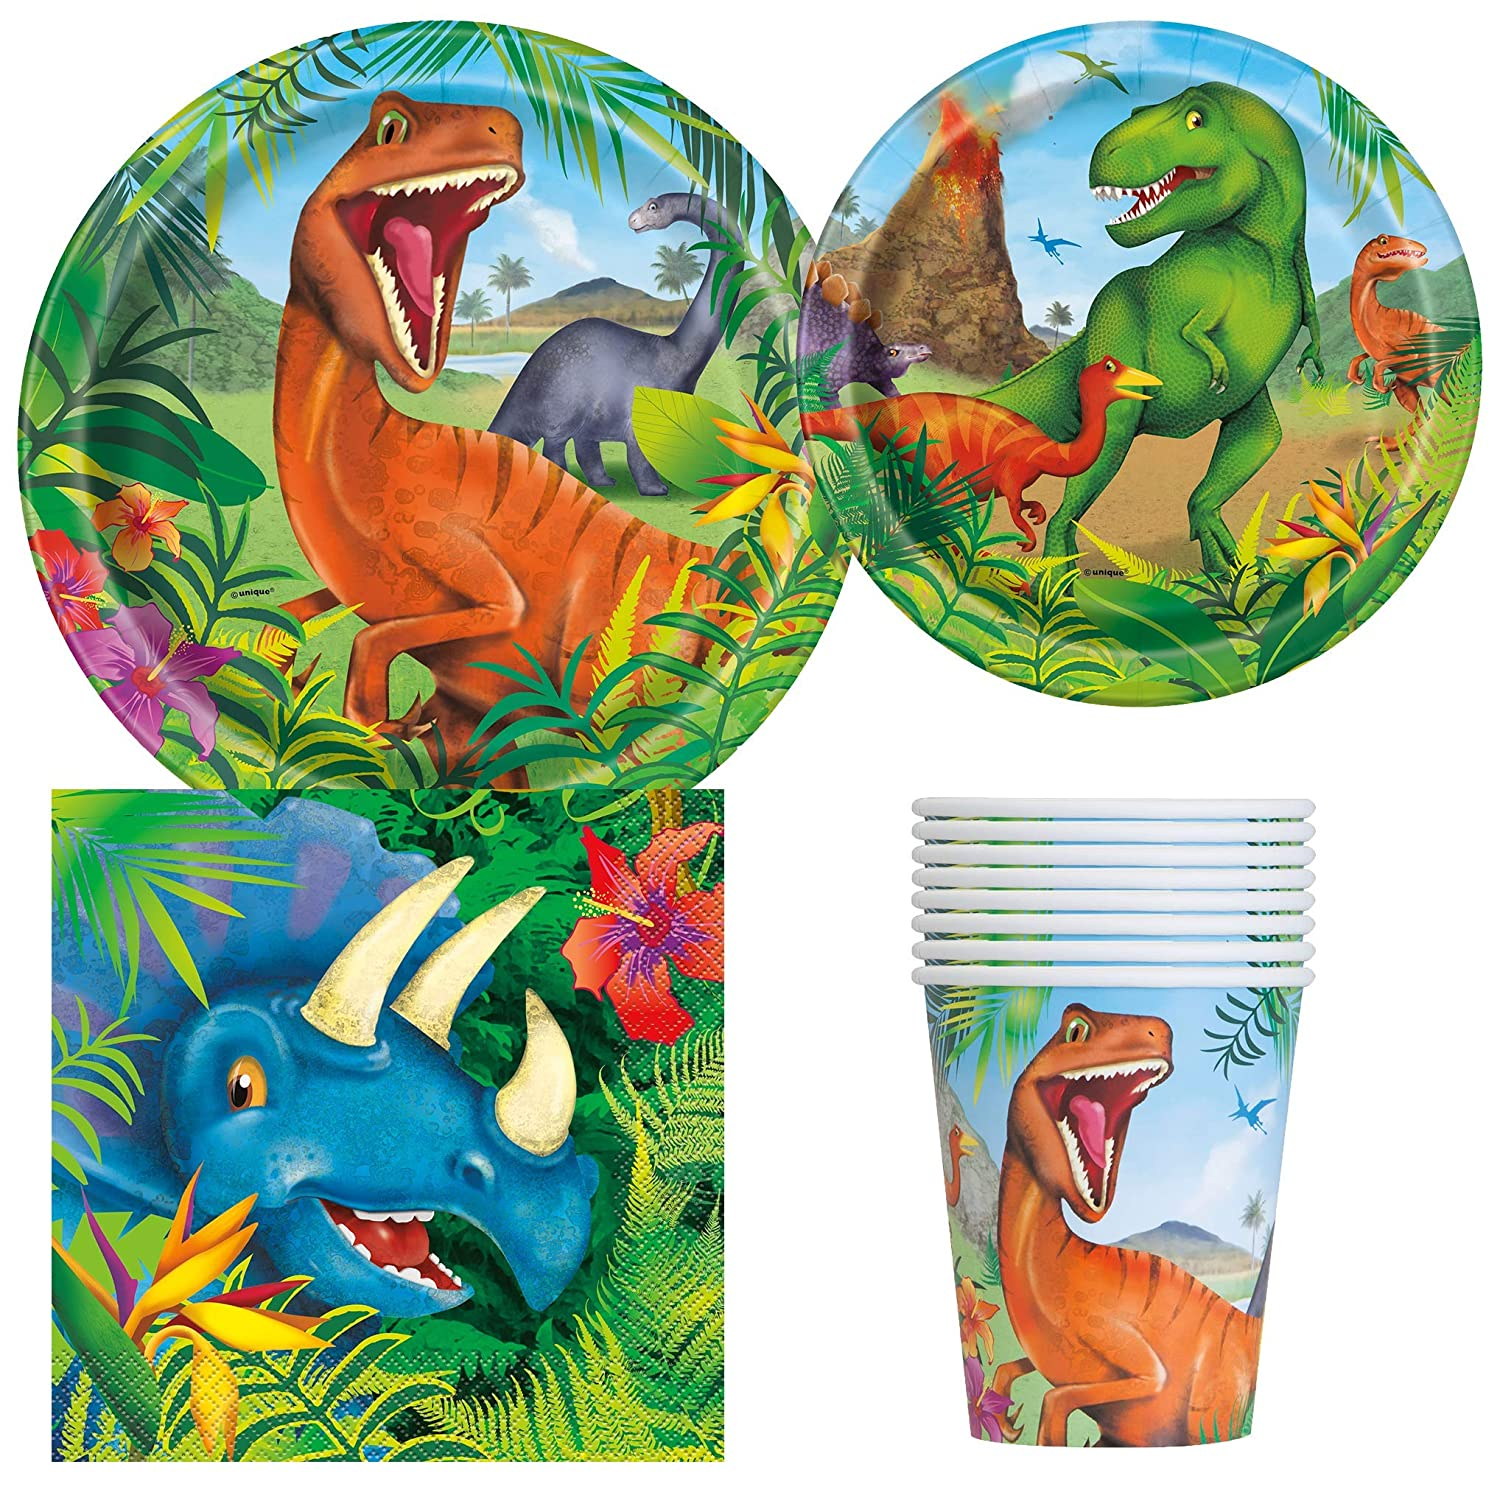 Dinosaur Party Bundles for 8 Guests